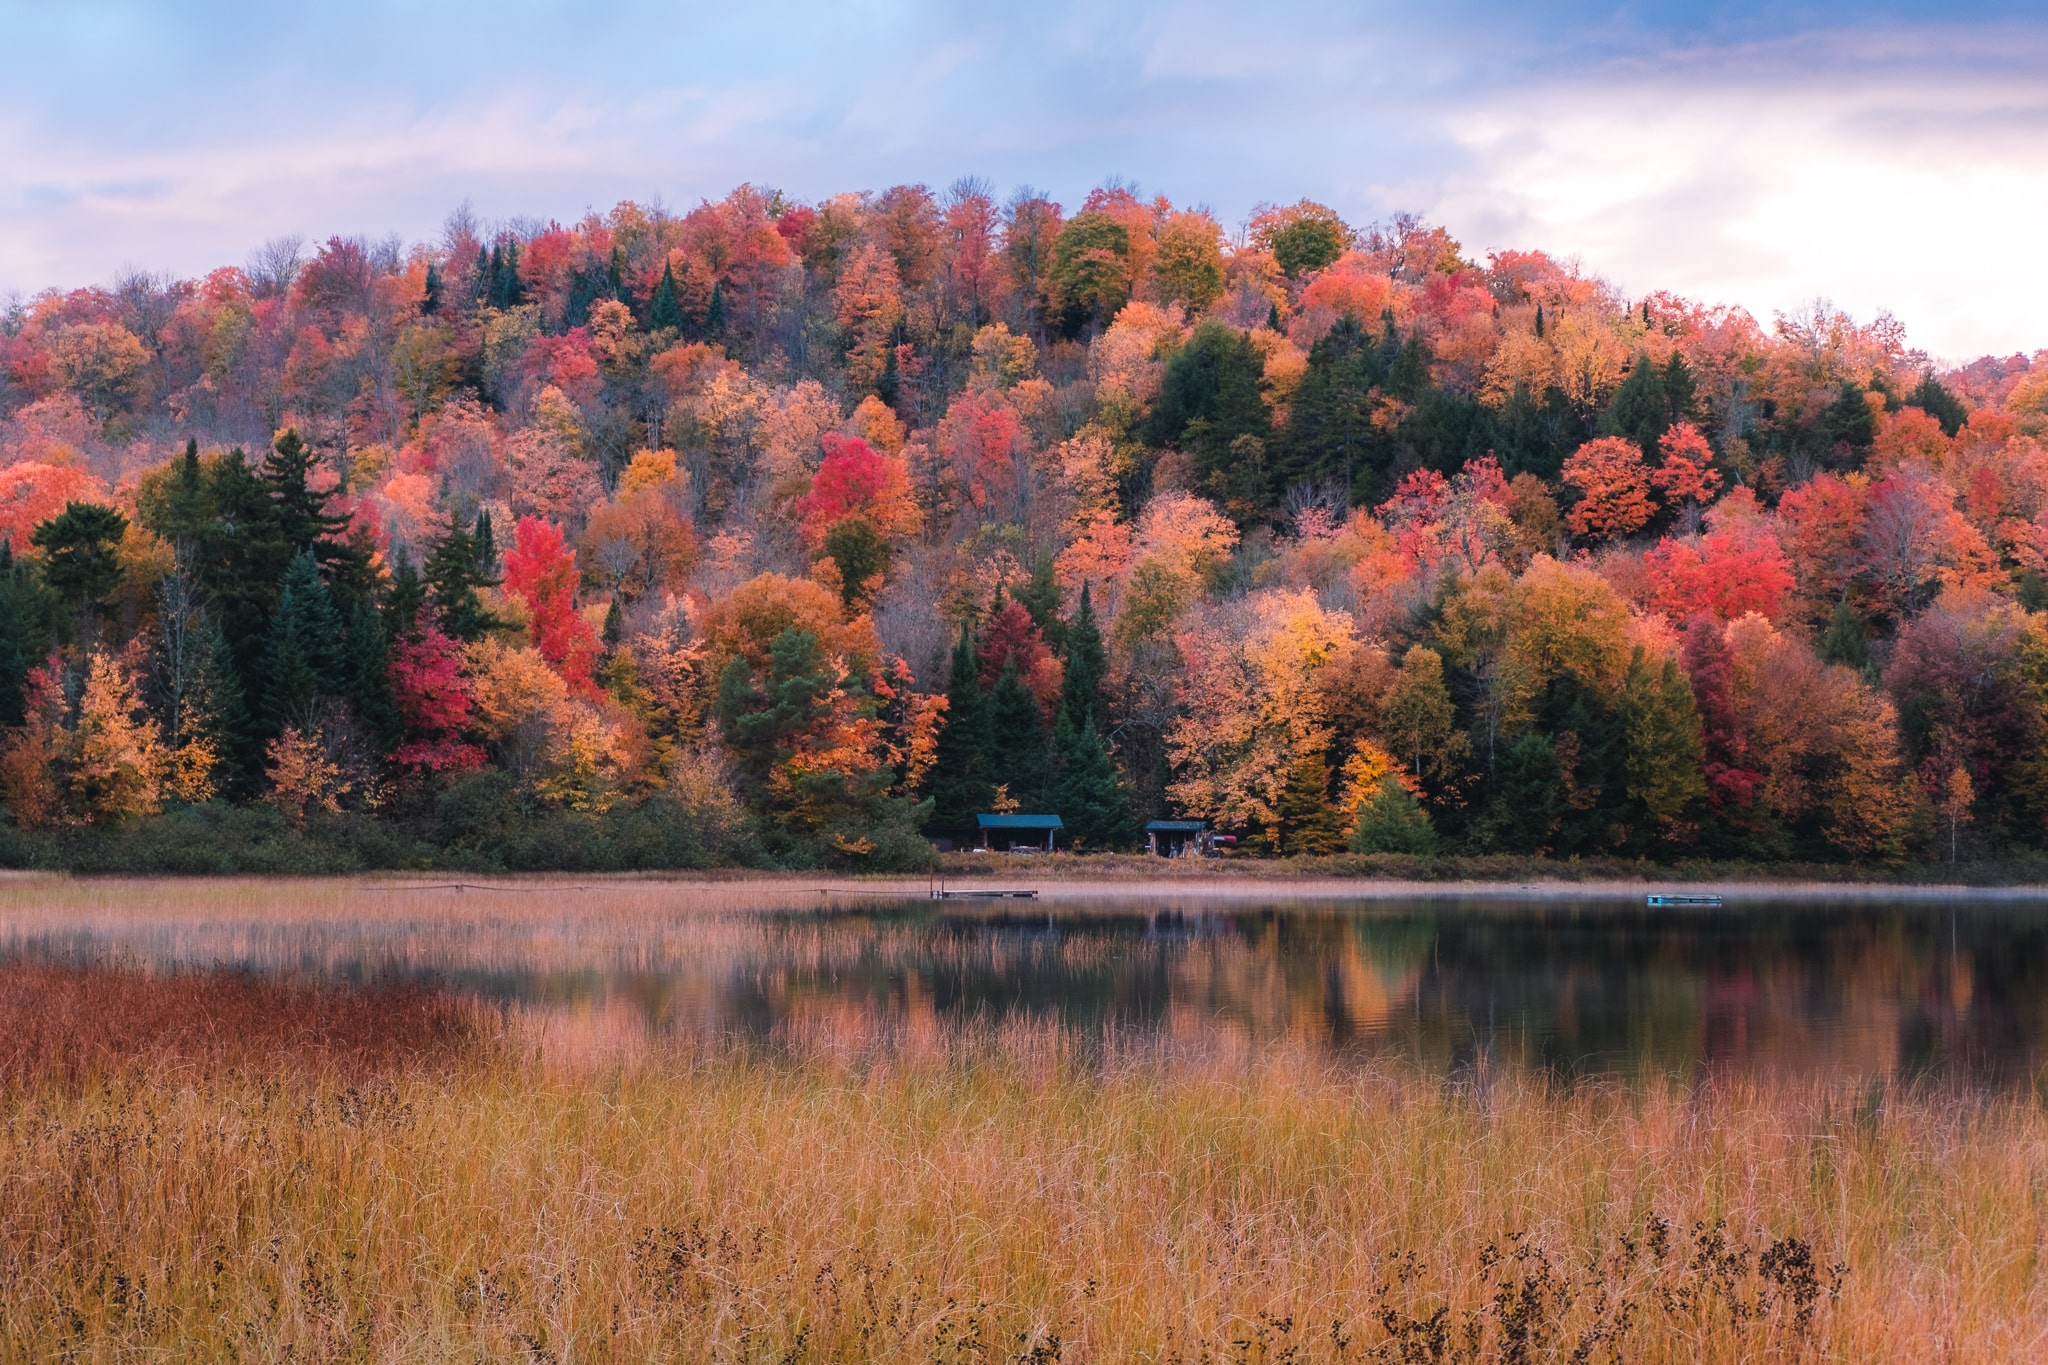 Sunset over a lake during peak foliage in New York